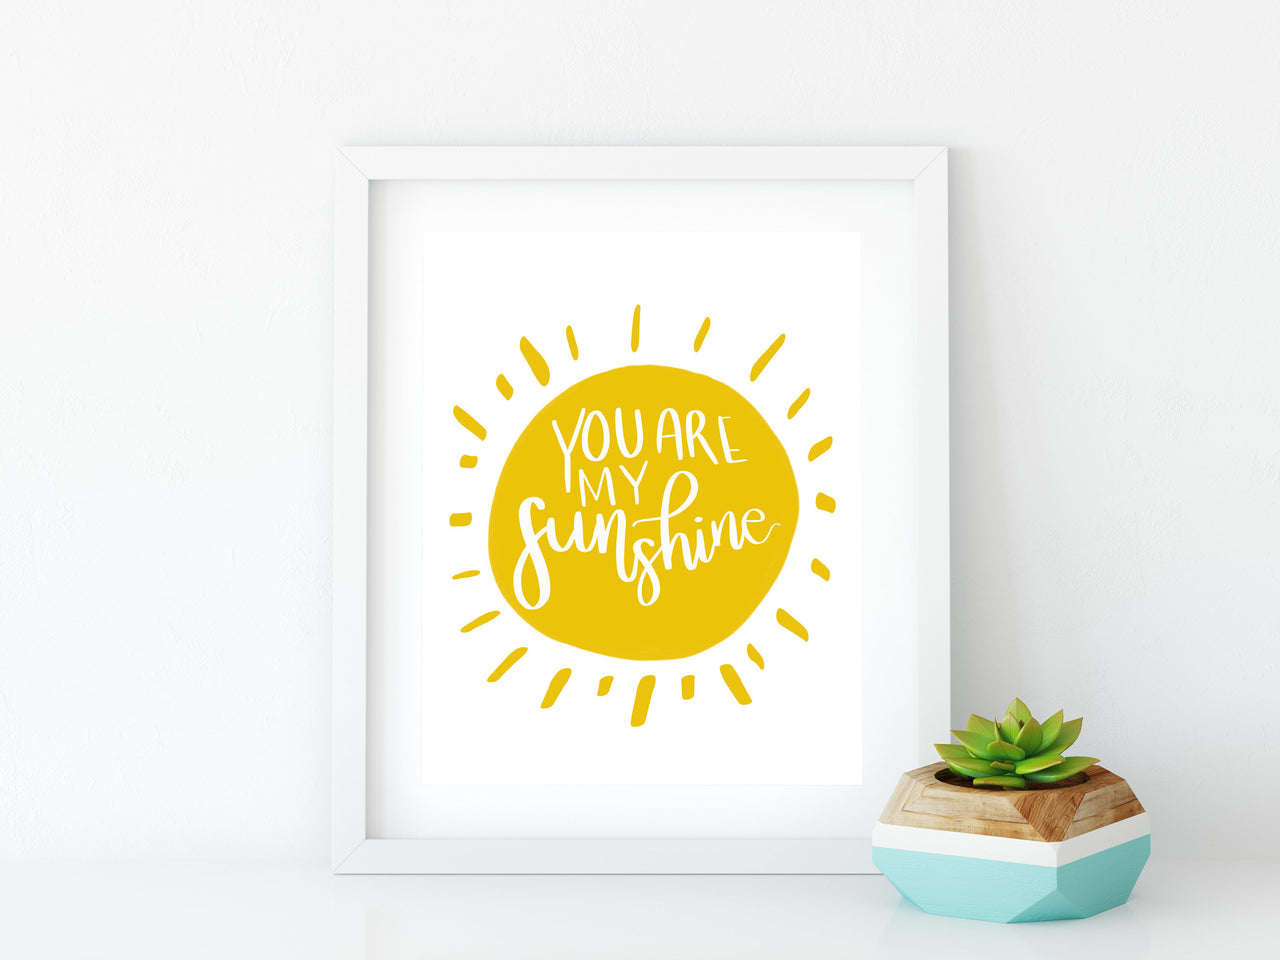 You Are My Sunshine 8x10 Graphic Art Print - Brown Paper Fox